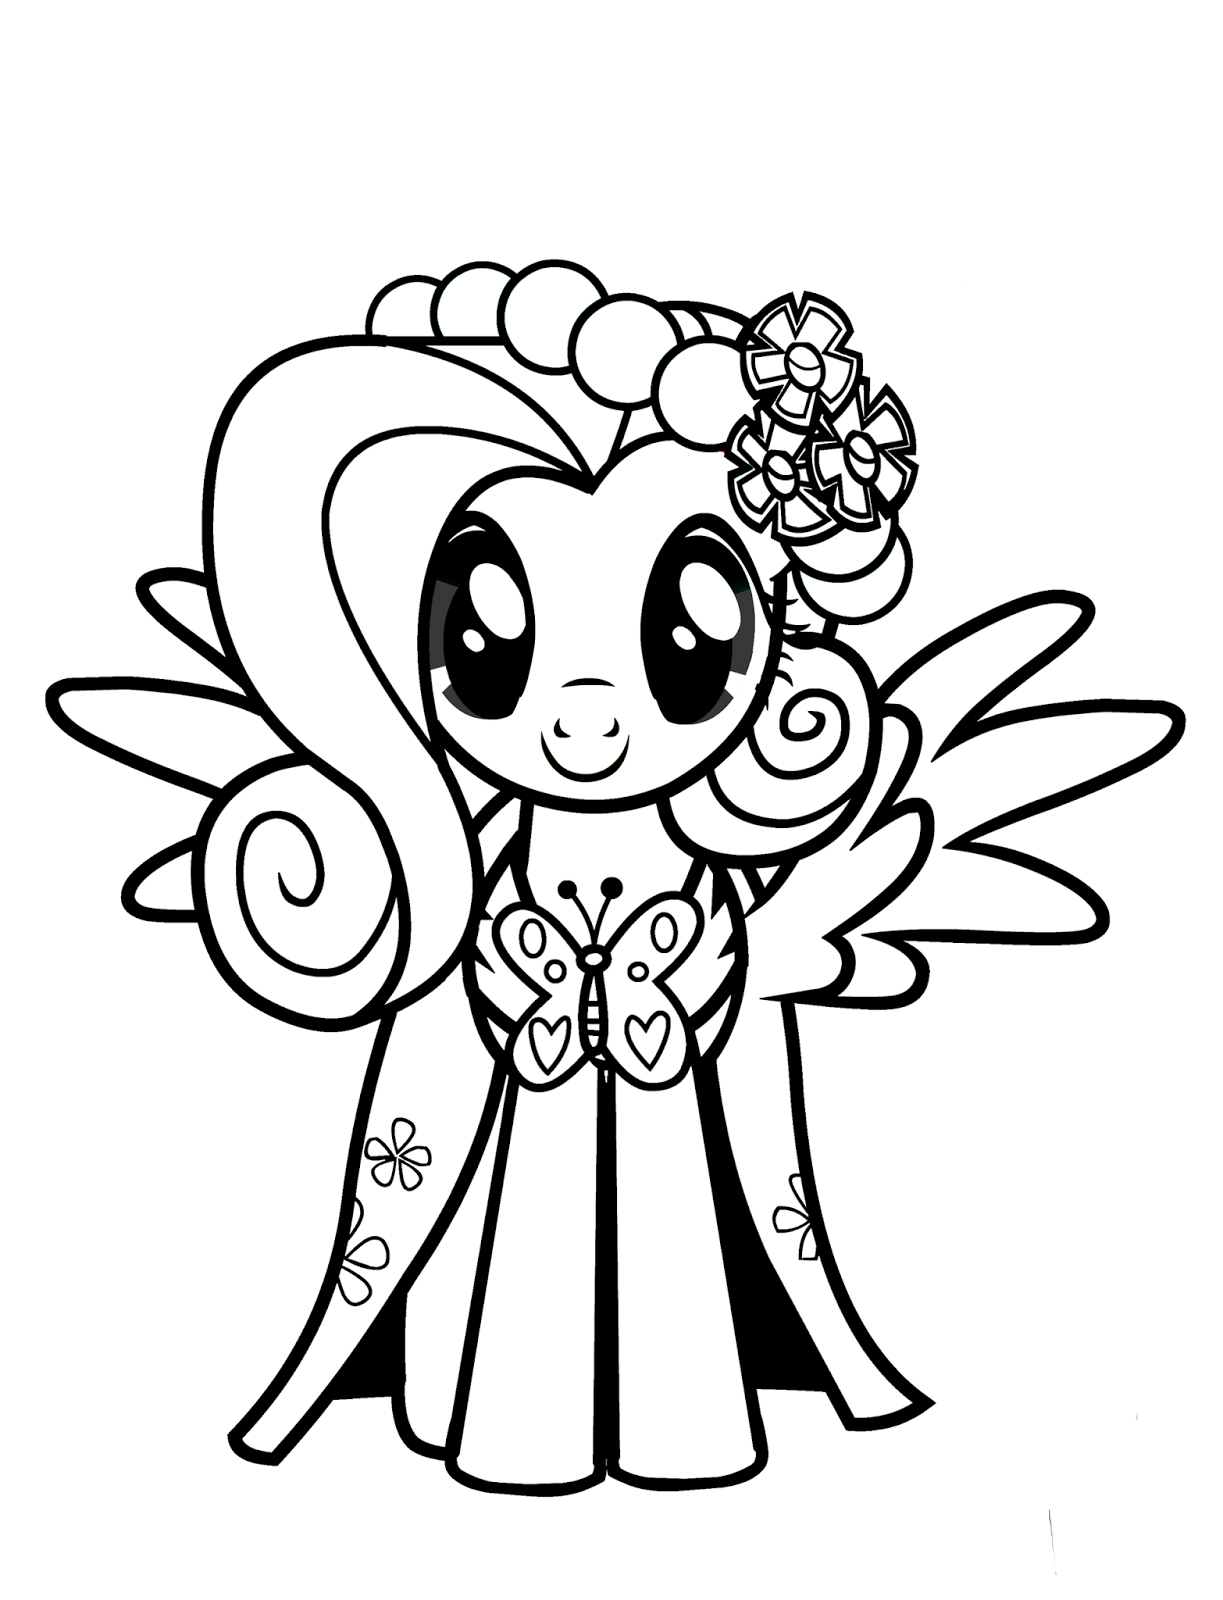 coloring pages little pony my little pony fluttershy coloring pages for kids little pages coloring pony